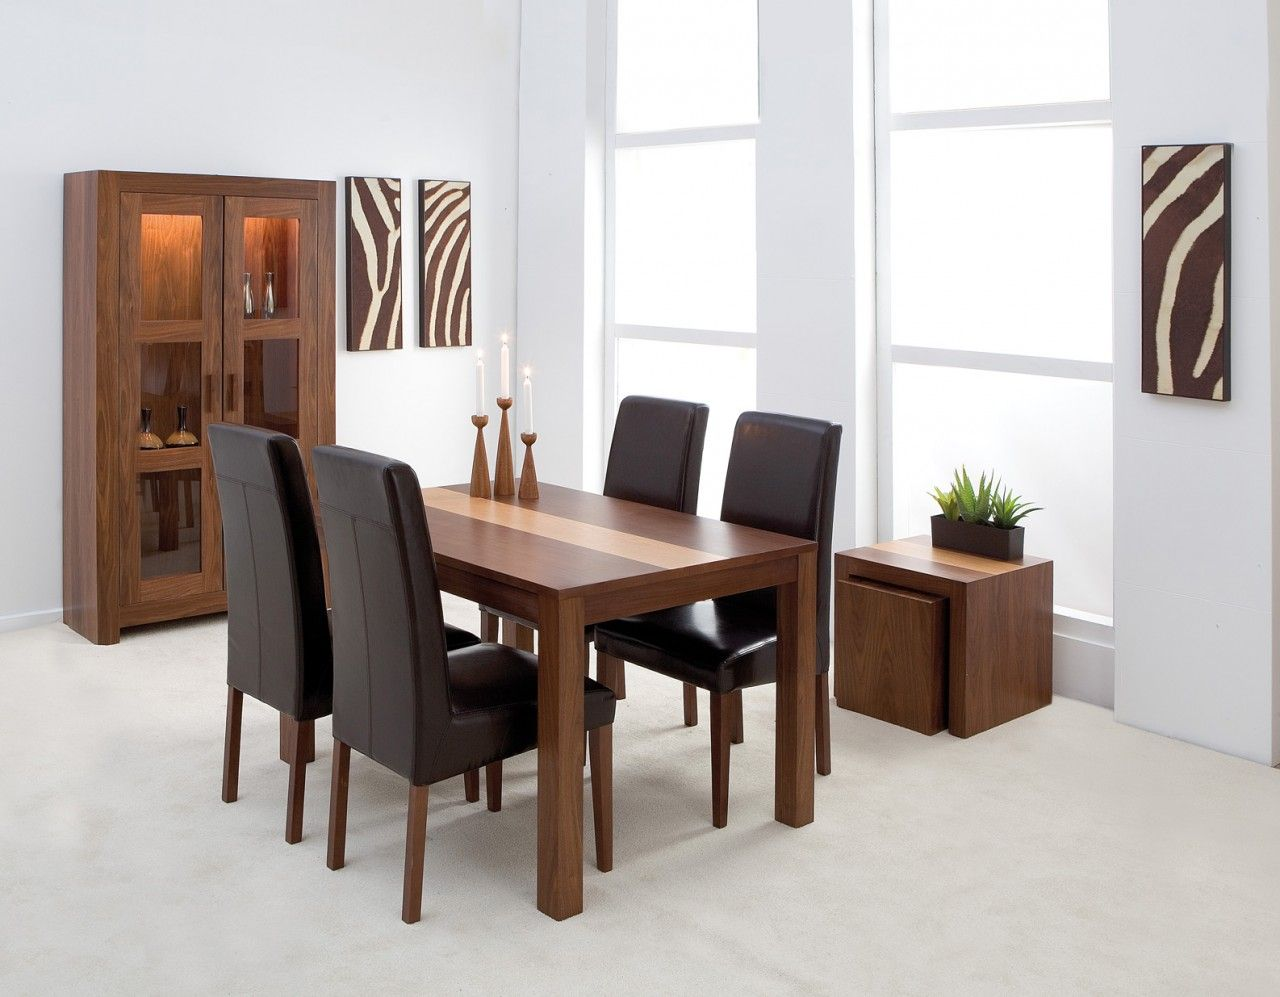 4 chair dining table set - 4 Chair Dining Table